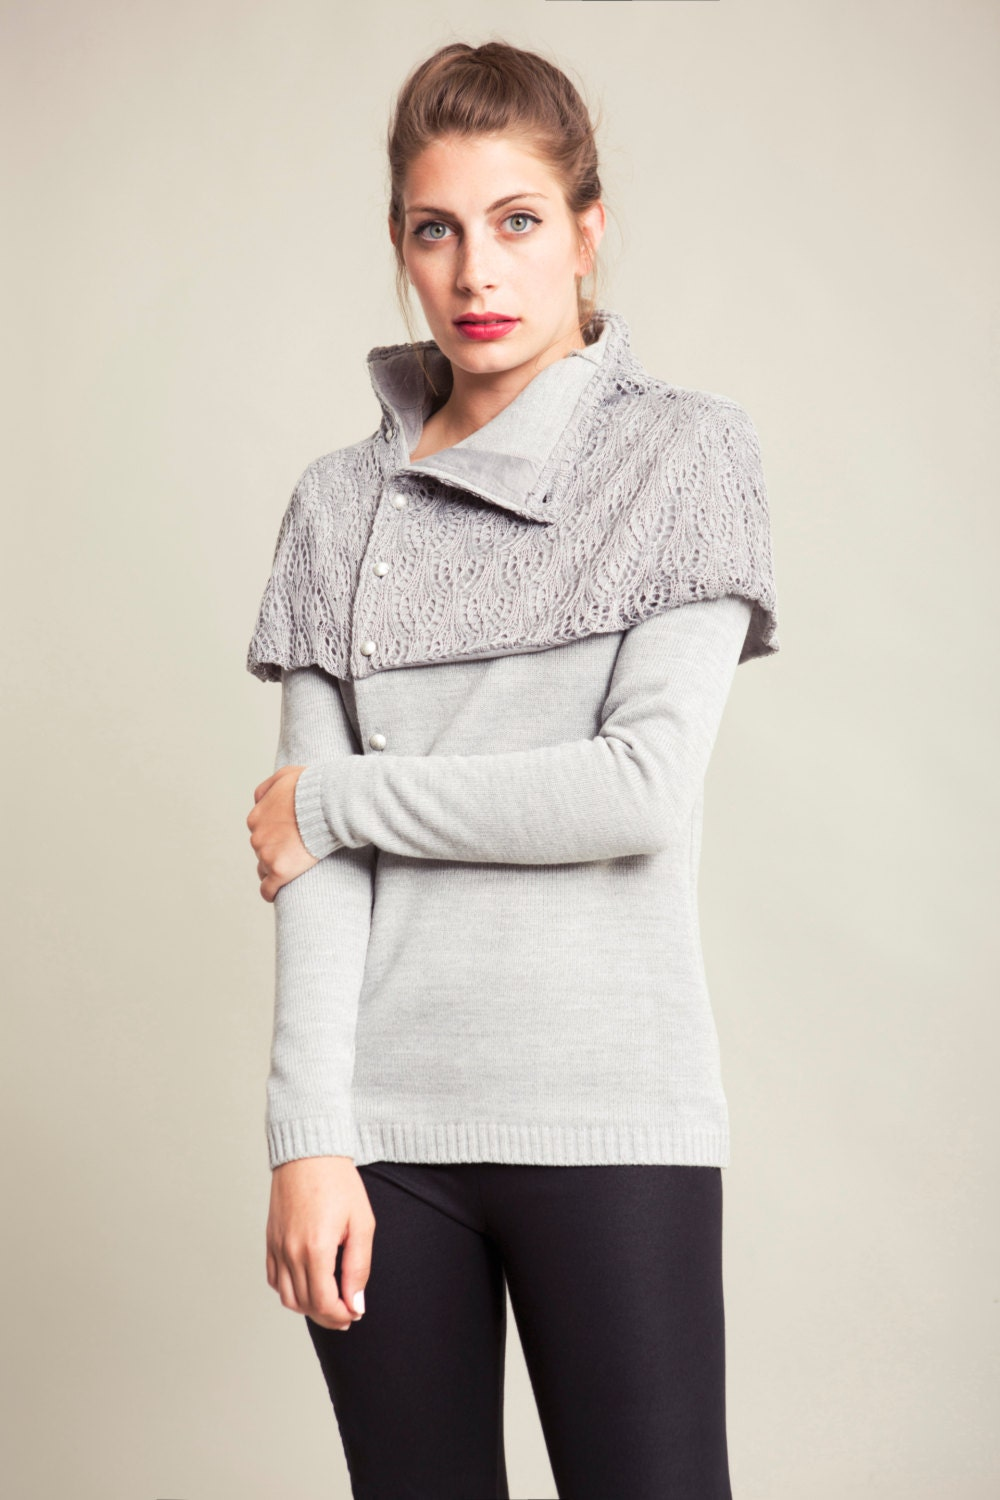 Enjoy free shipping and easy returns every day at Kohl's. Find great deals on Womens Grey Cardigan Tops at Kohl's today!